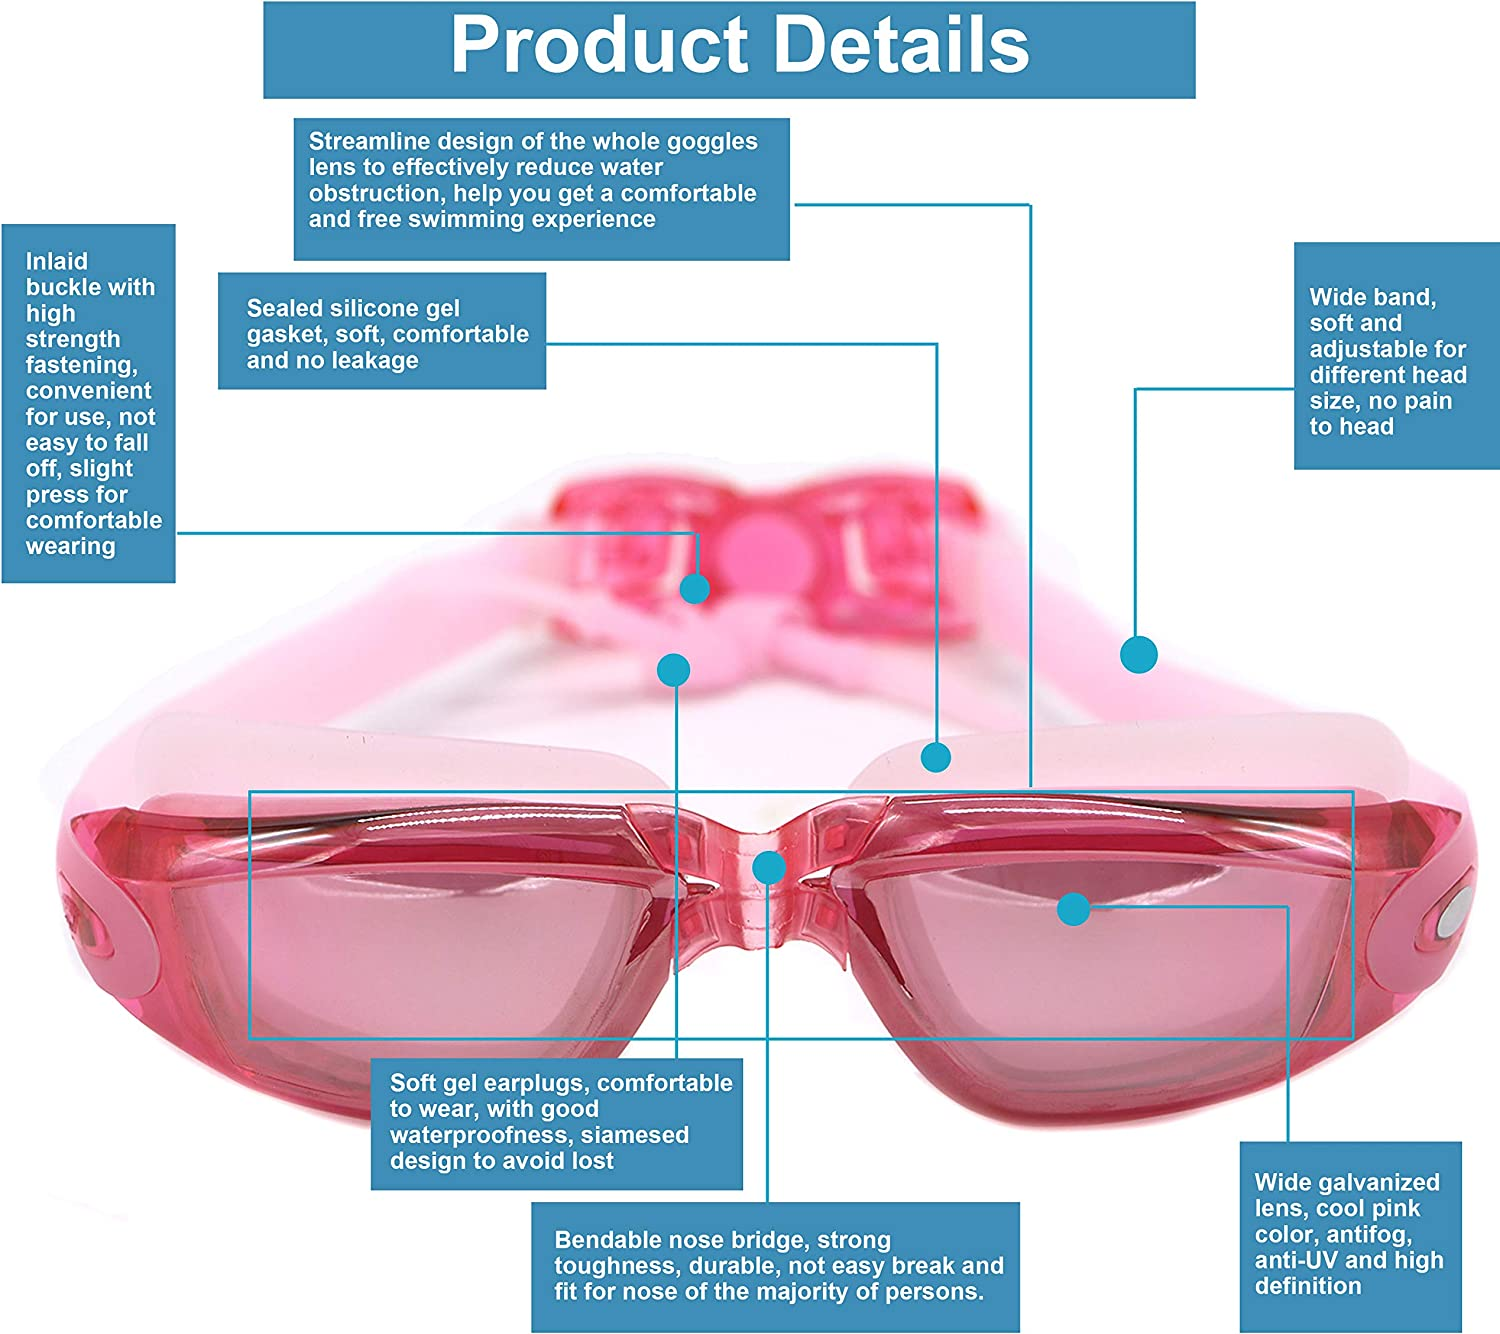 0 to -800 Hersvin Nearsighted Swimming Goggles Myopic Shortsighted UV400 Anti-UV Anti-fog Goggles with Integral Earplugs Removable Nose Bridge for Adult Men Women Children